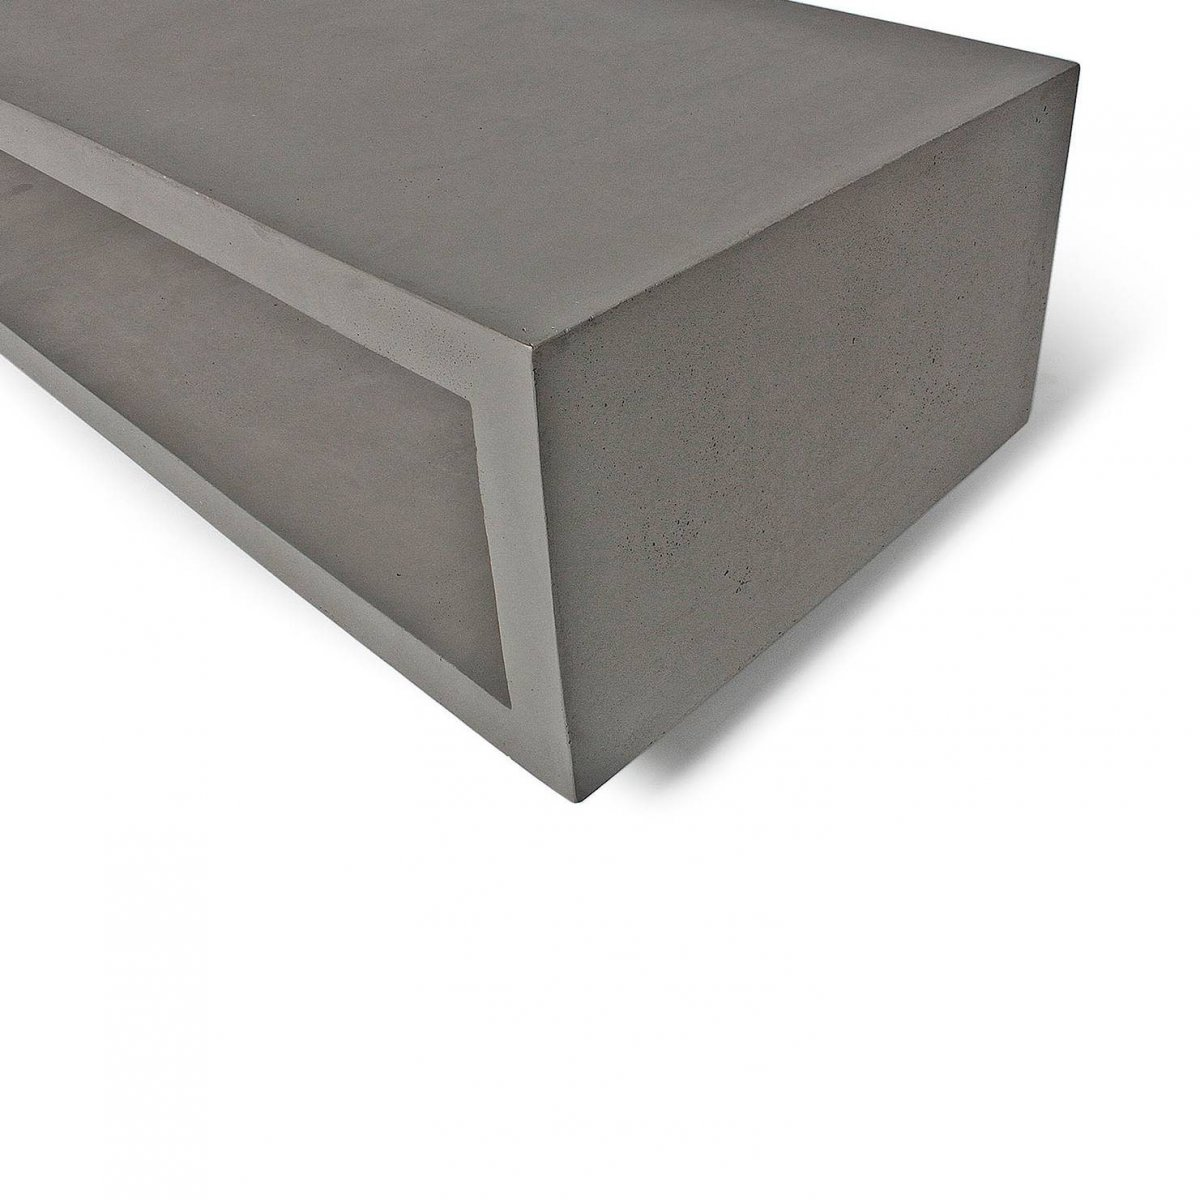 Monobloc TV Bench, detail.